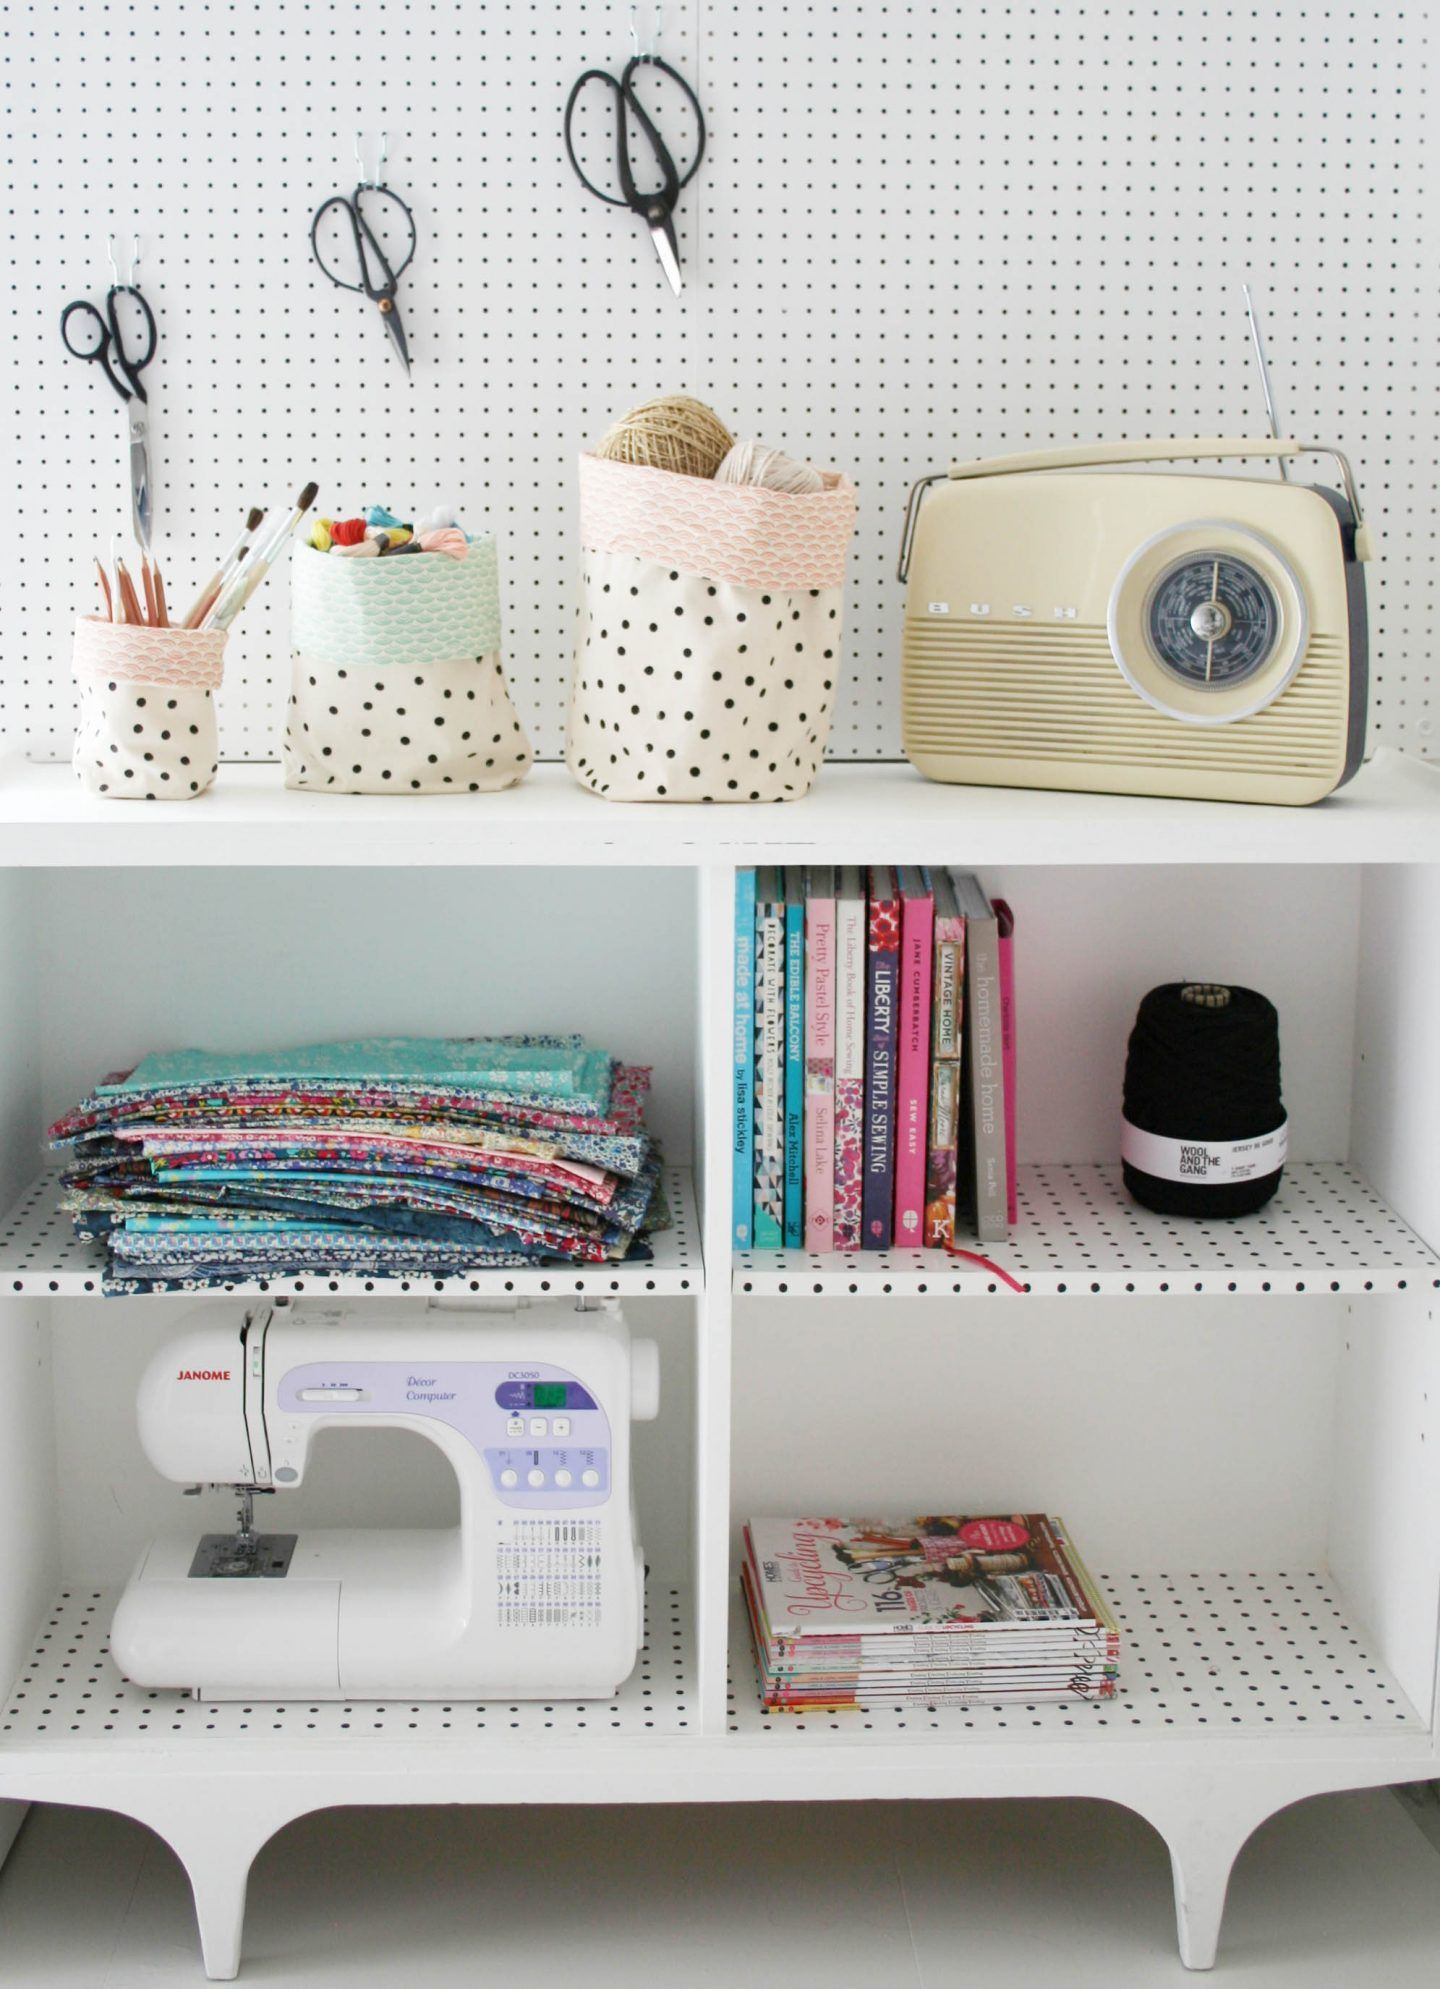 How to make fabric buckets for storing craft materials, toys or ...